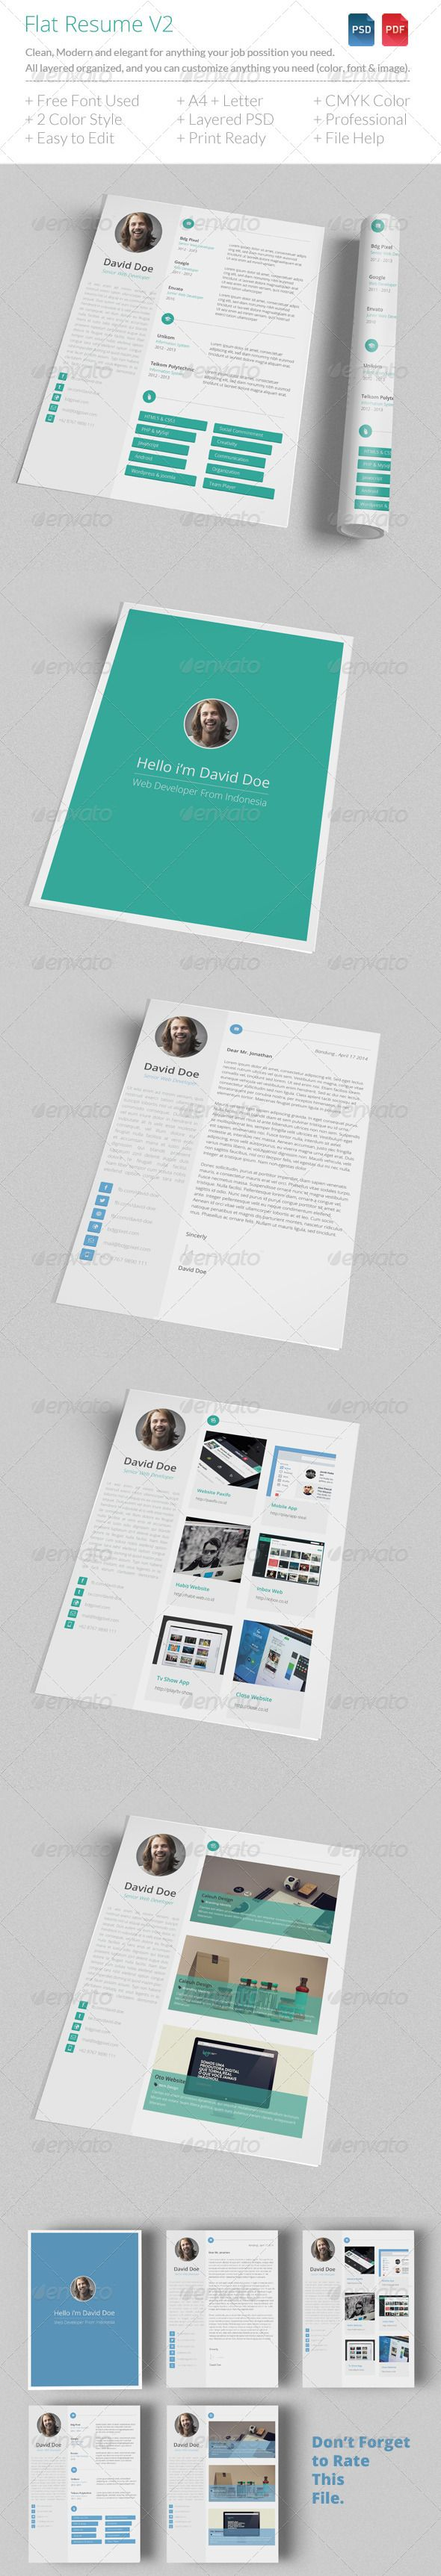 Download at httpgraphicrivernetitemflat resume 263 best Curriculum images